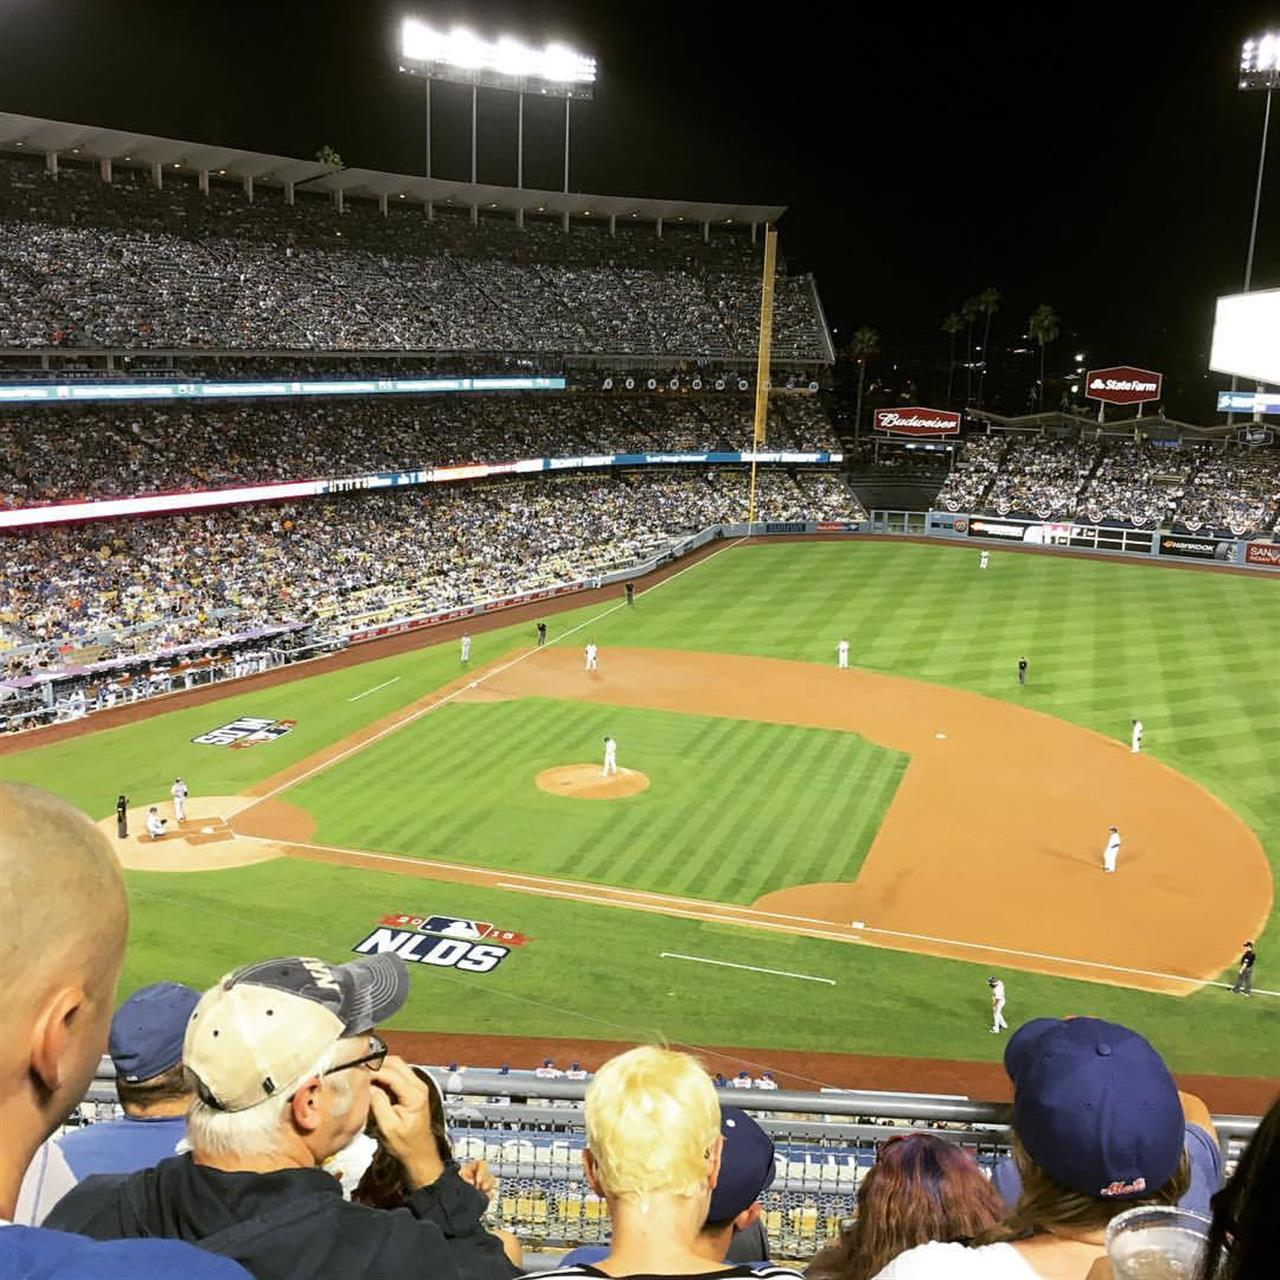 Dodger Game in Los Angeles, CA